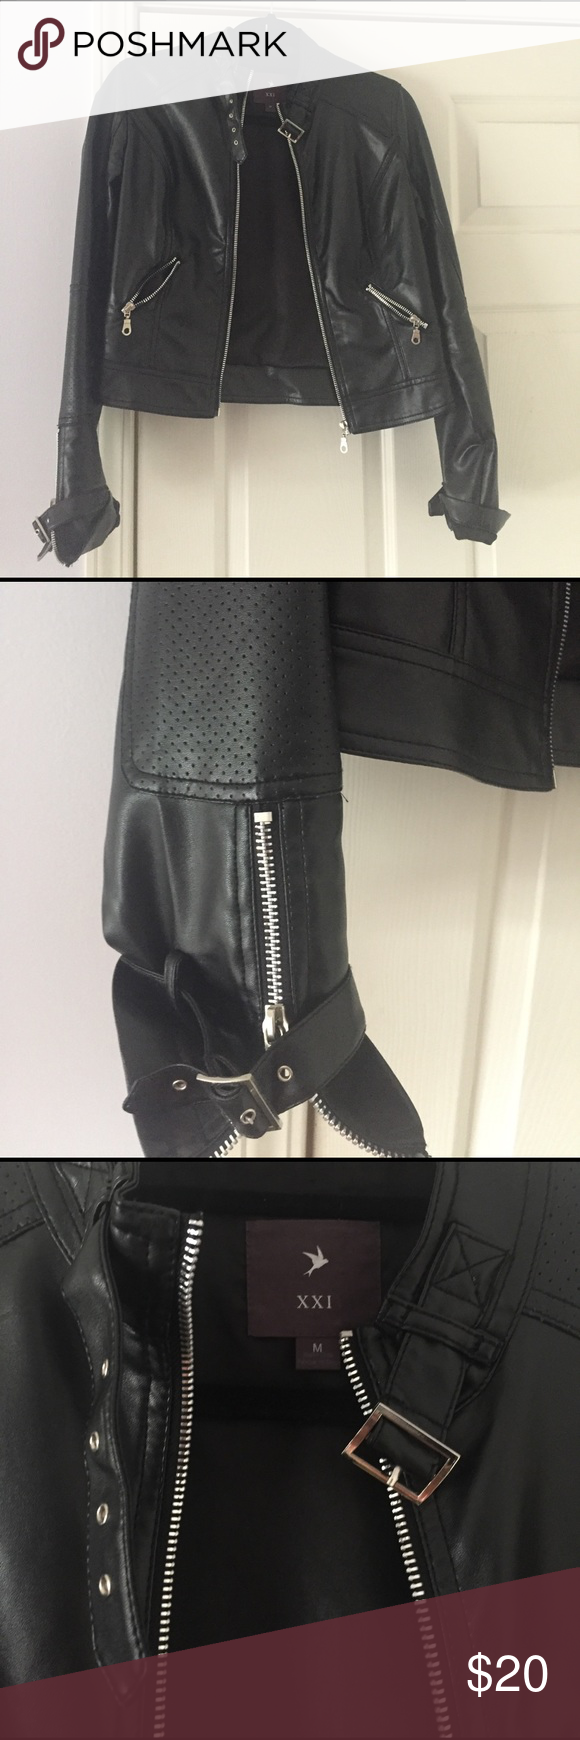 Faux leather jacket Brand new, only worn once for a Halloween costume (I was Lady Gaga lol) Multiple zippers and buckles. Cool looking jacket! Forever 21 Jackets & Coats